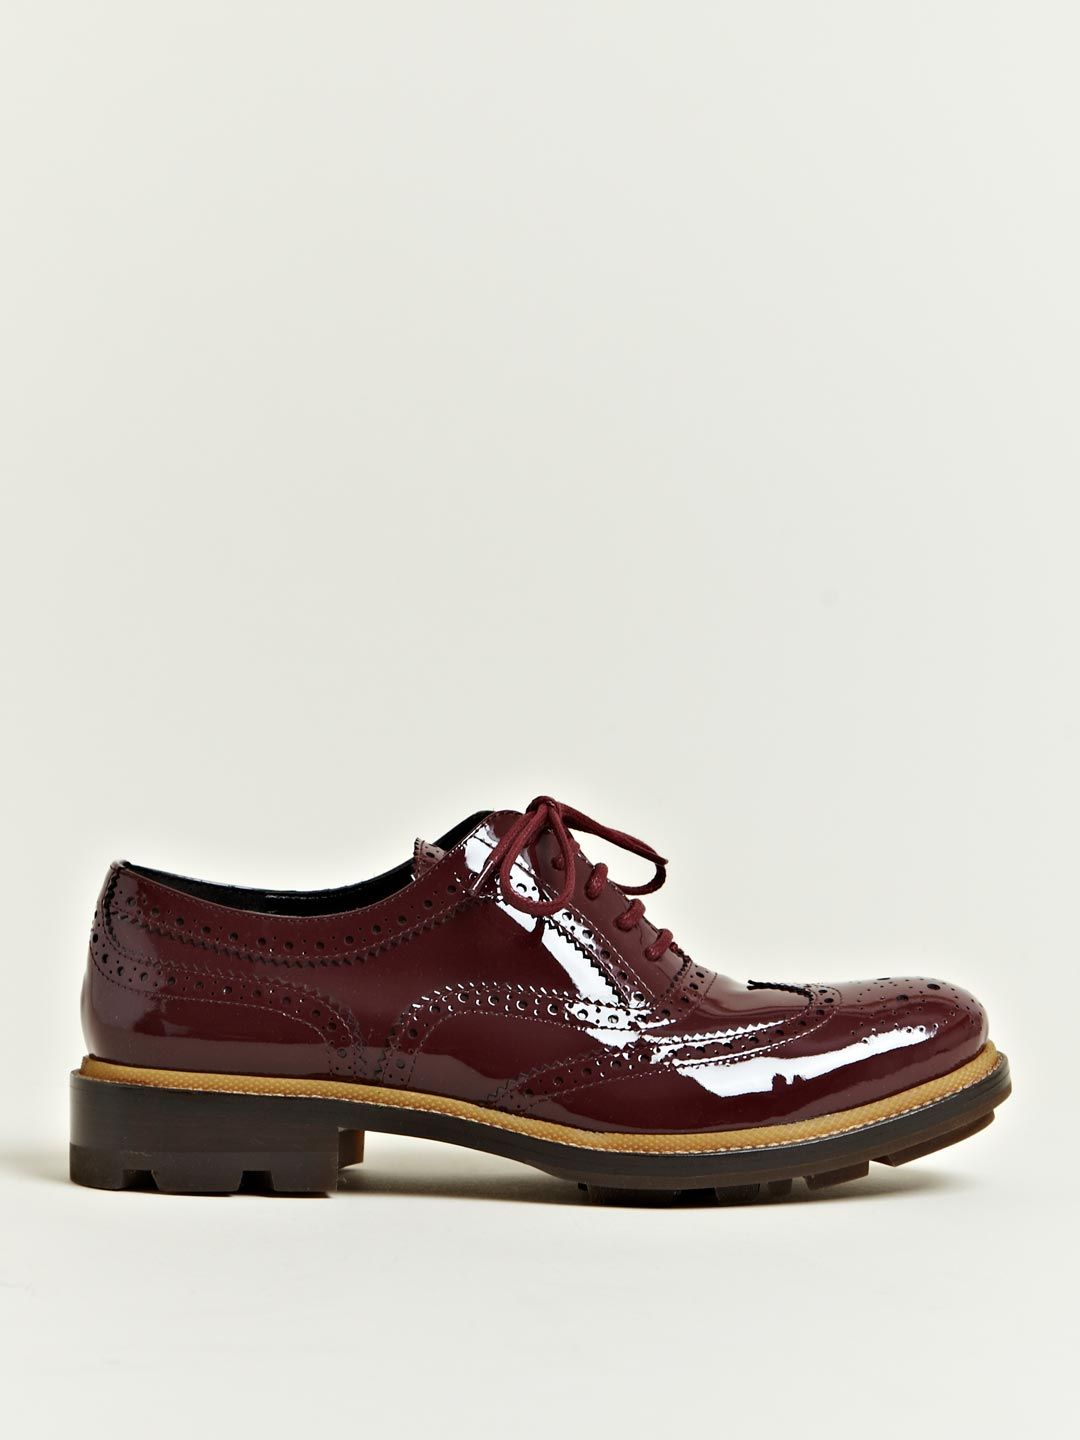 Jil Sander Women's Patent Brogue Oxford Shoes | LN-CC